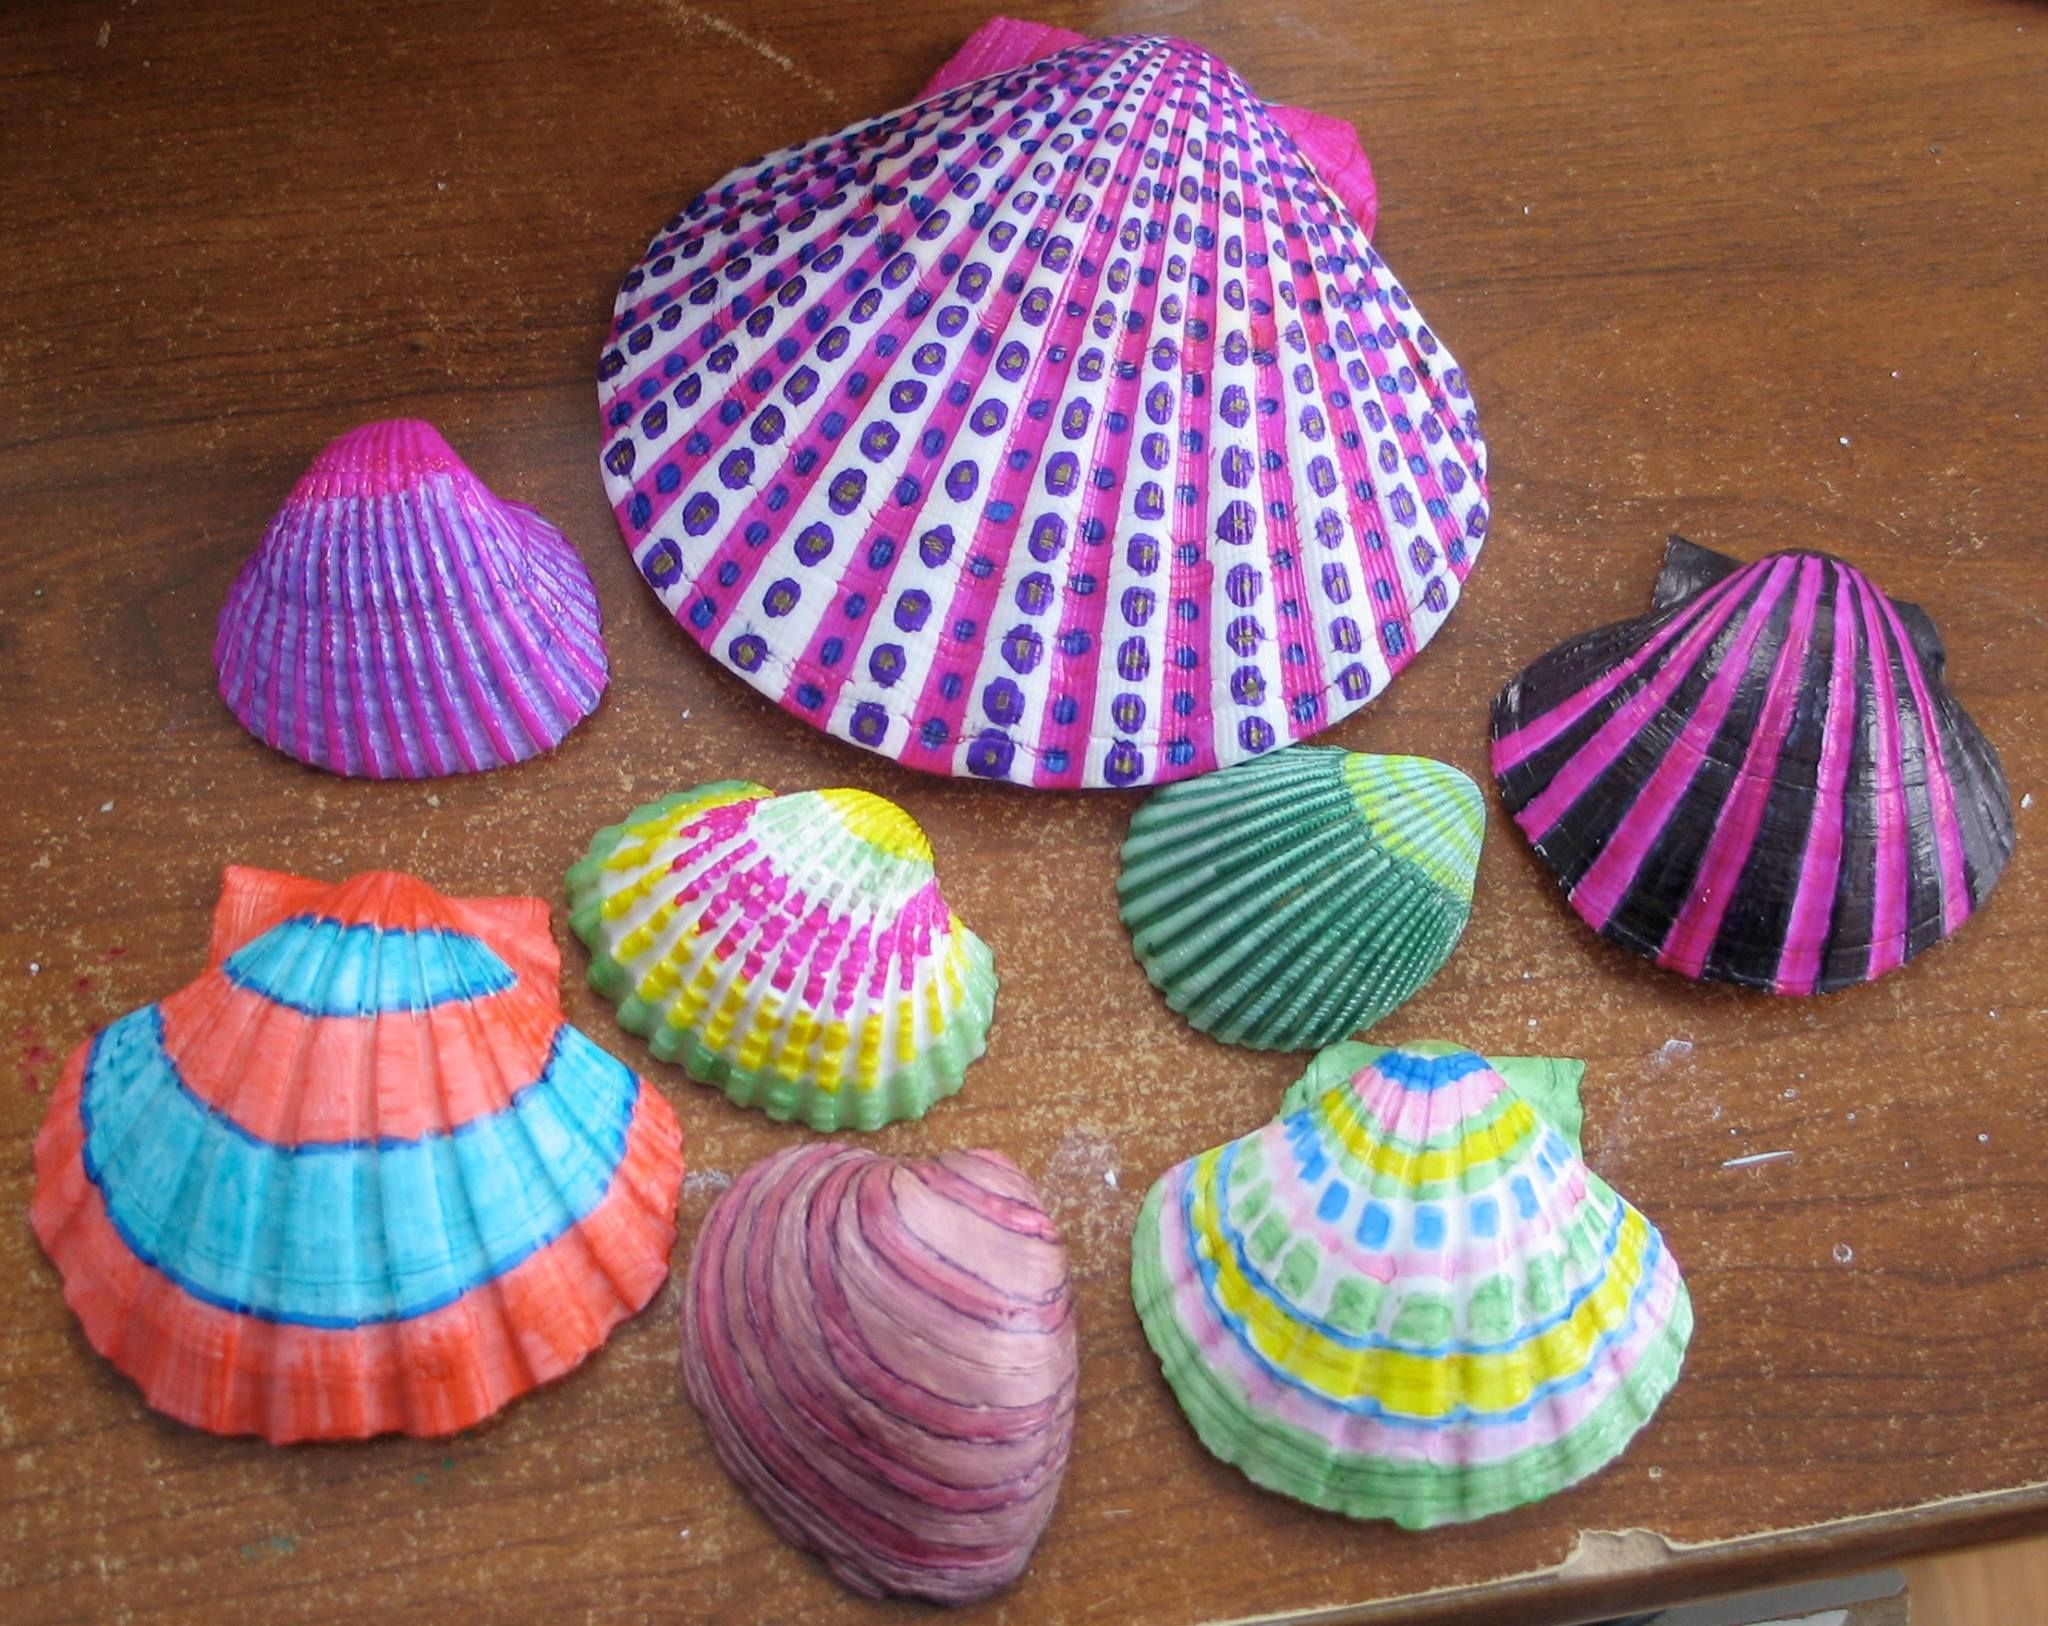 More shells i painted with sharpie pens seashell crafts for Seashell crafts for adults